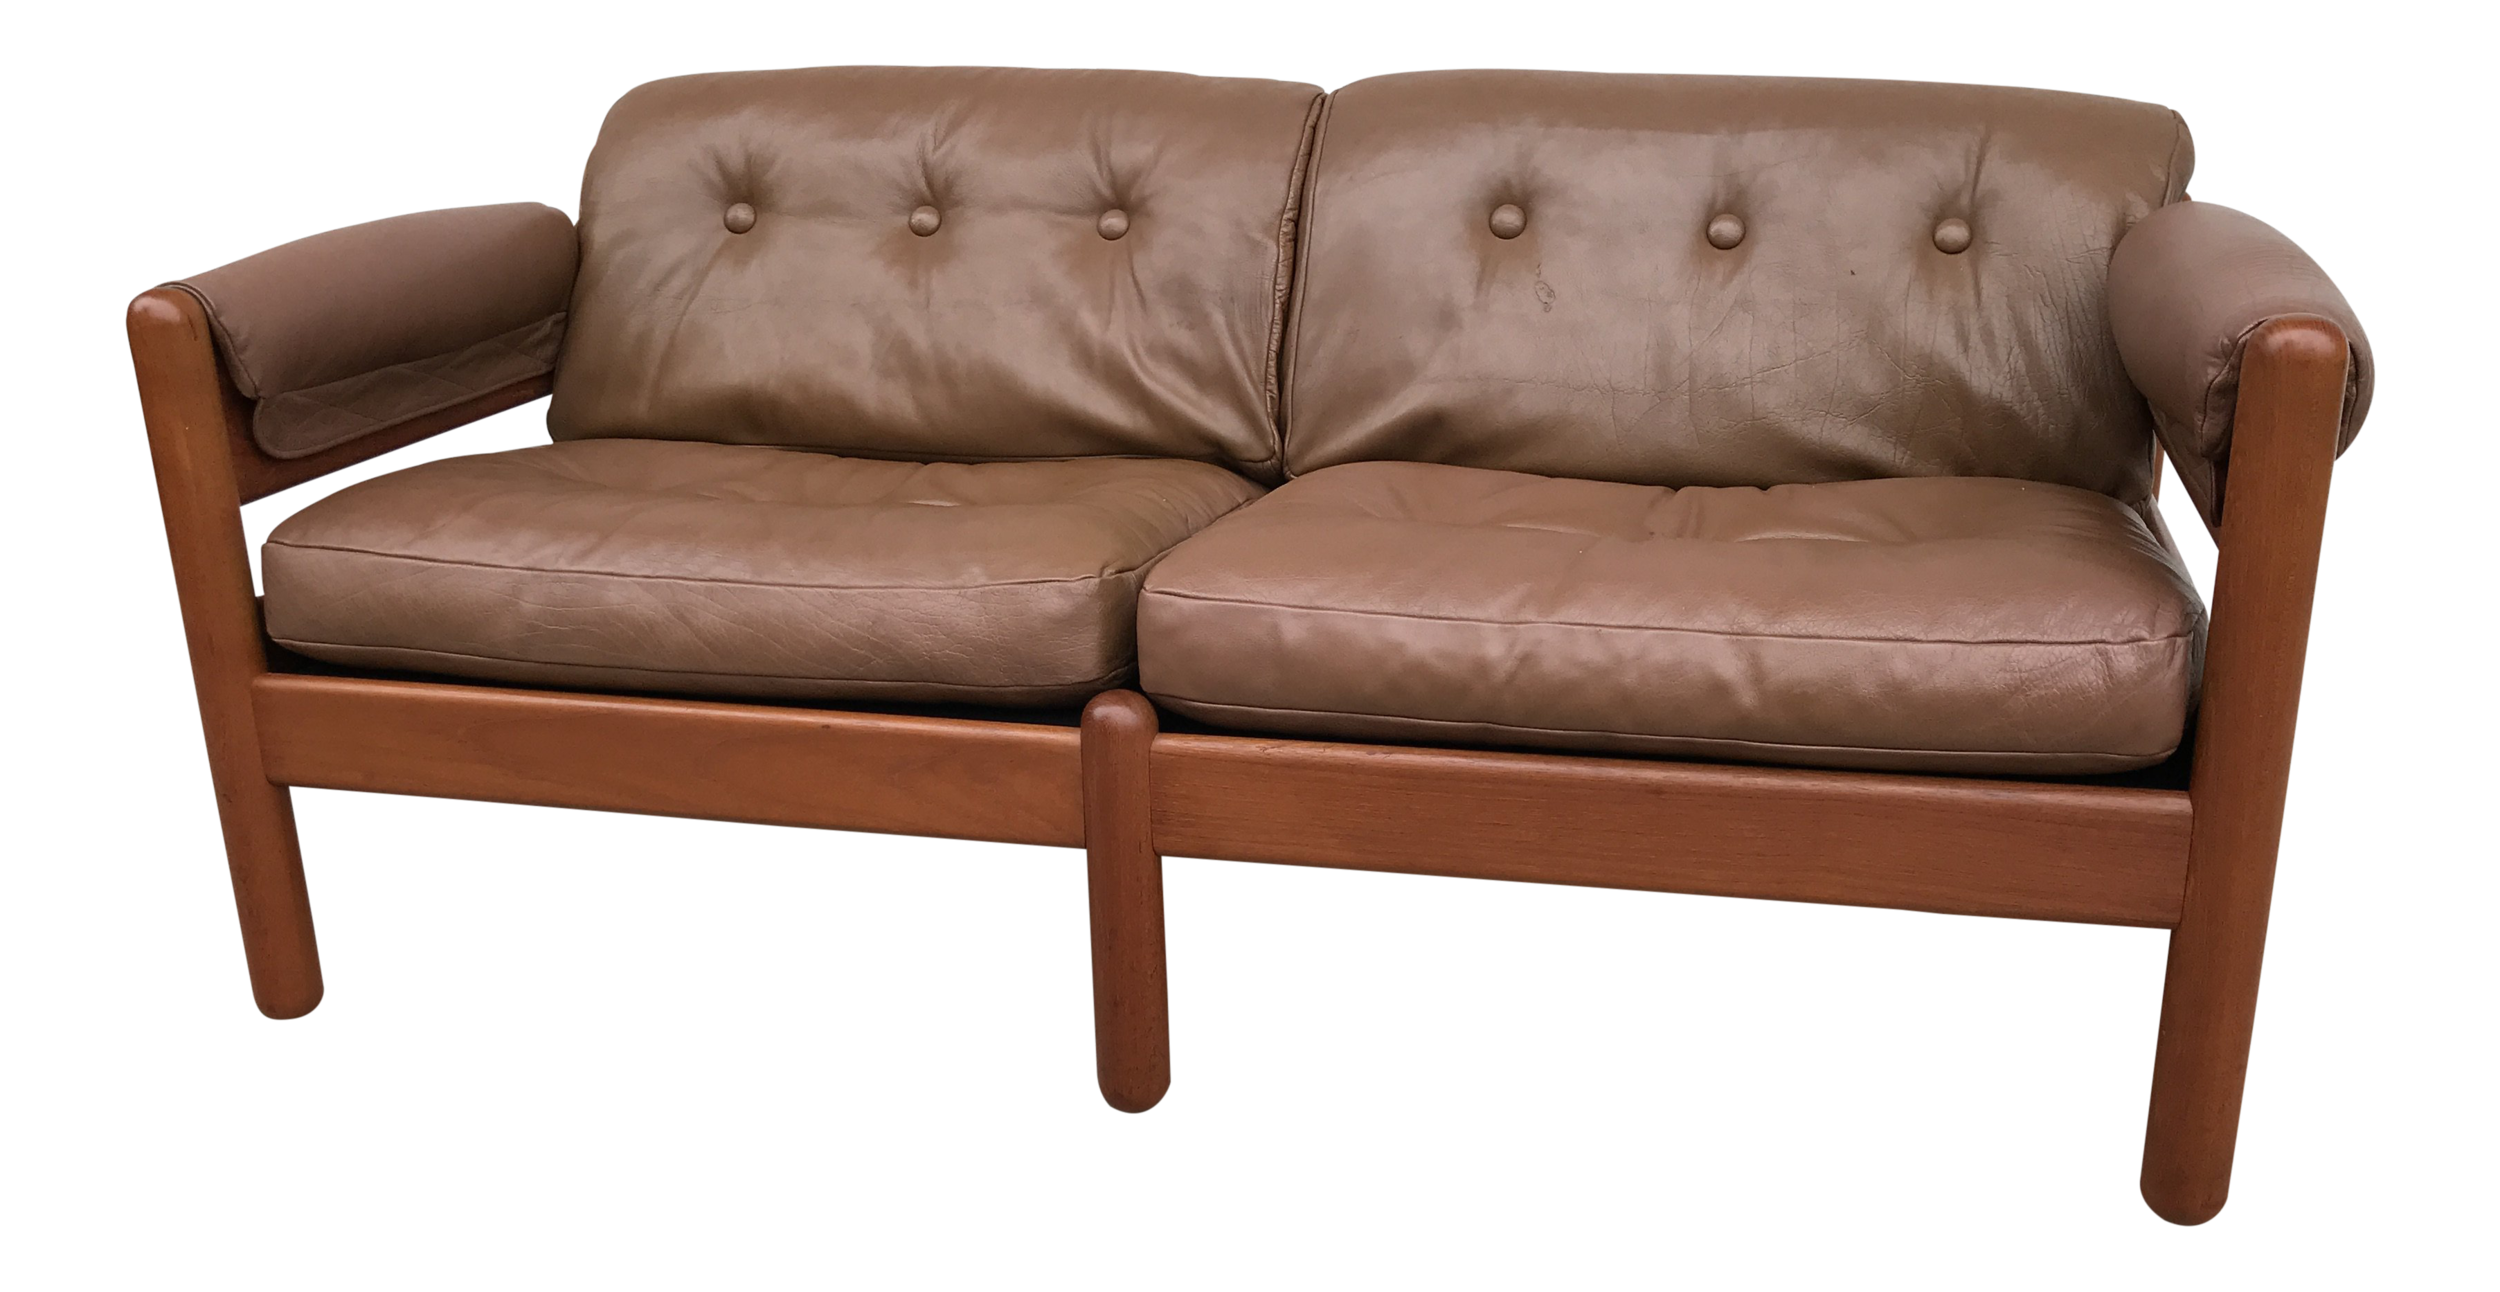 1960s-danish-modern-makael-laursen-teak-and-leather-sofa-9095.png